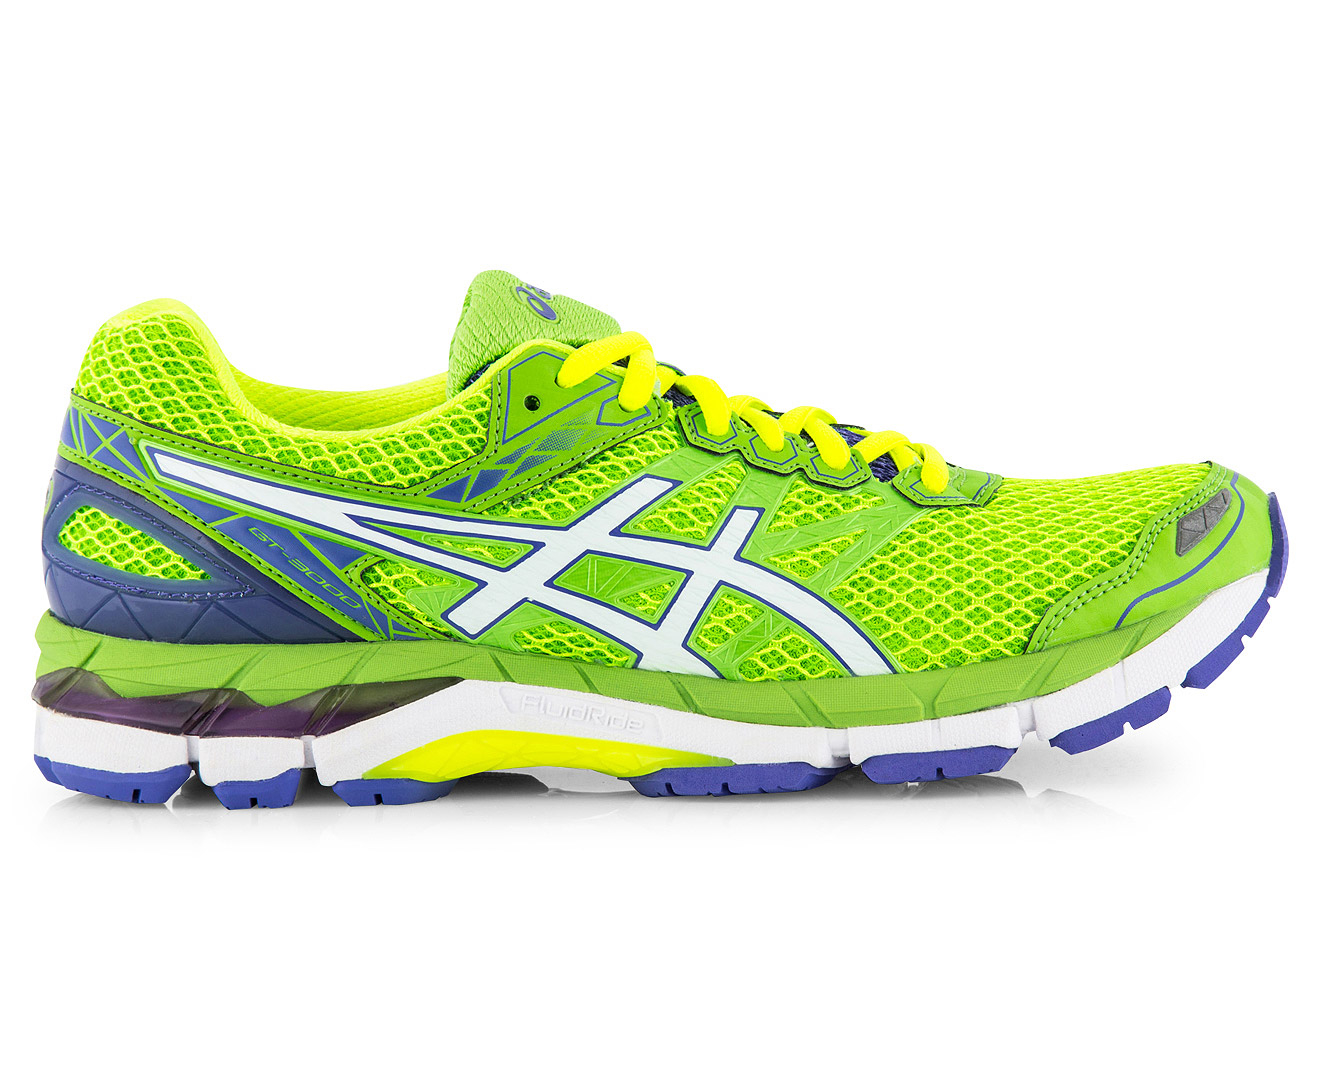 world-wide selection of color brilliancy order online ASICS Women's GT-3000 4 Shoe - Jasmin Green/White/Flash Yellow